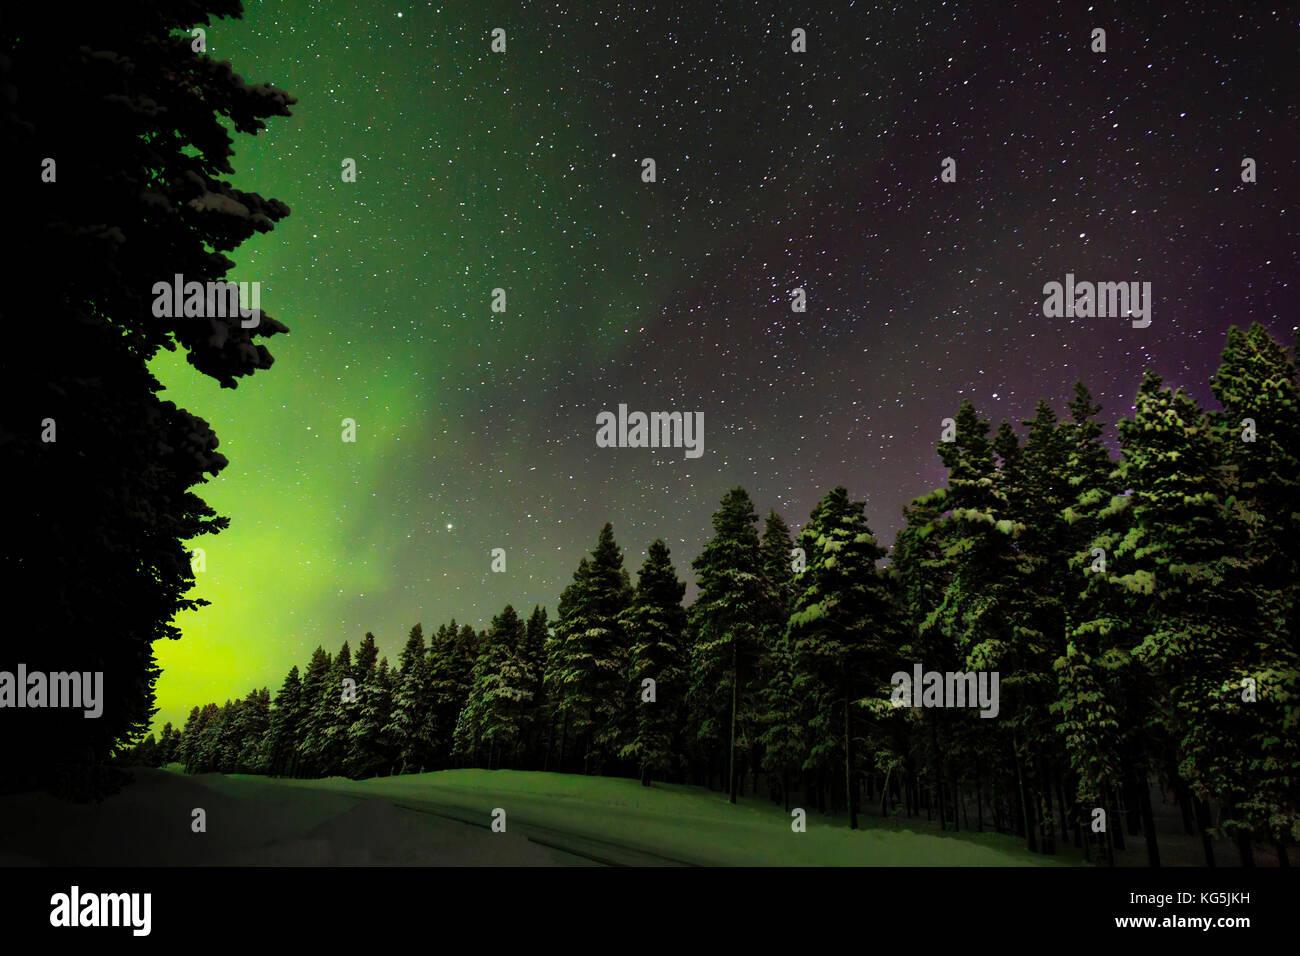 Aurora Borealis or Northern Lights, Lapland, Sweden - Stock Image